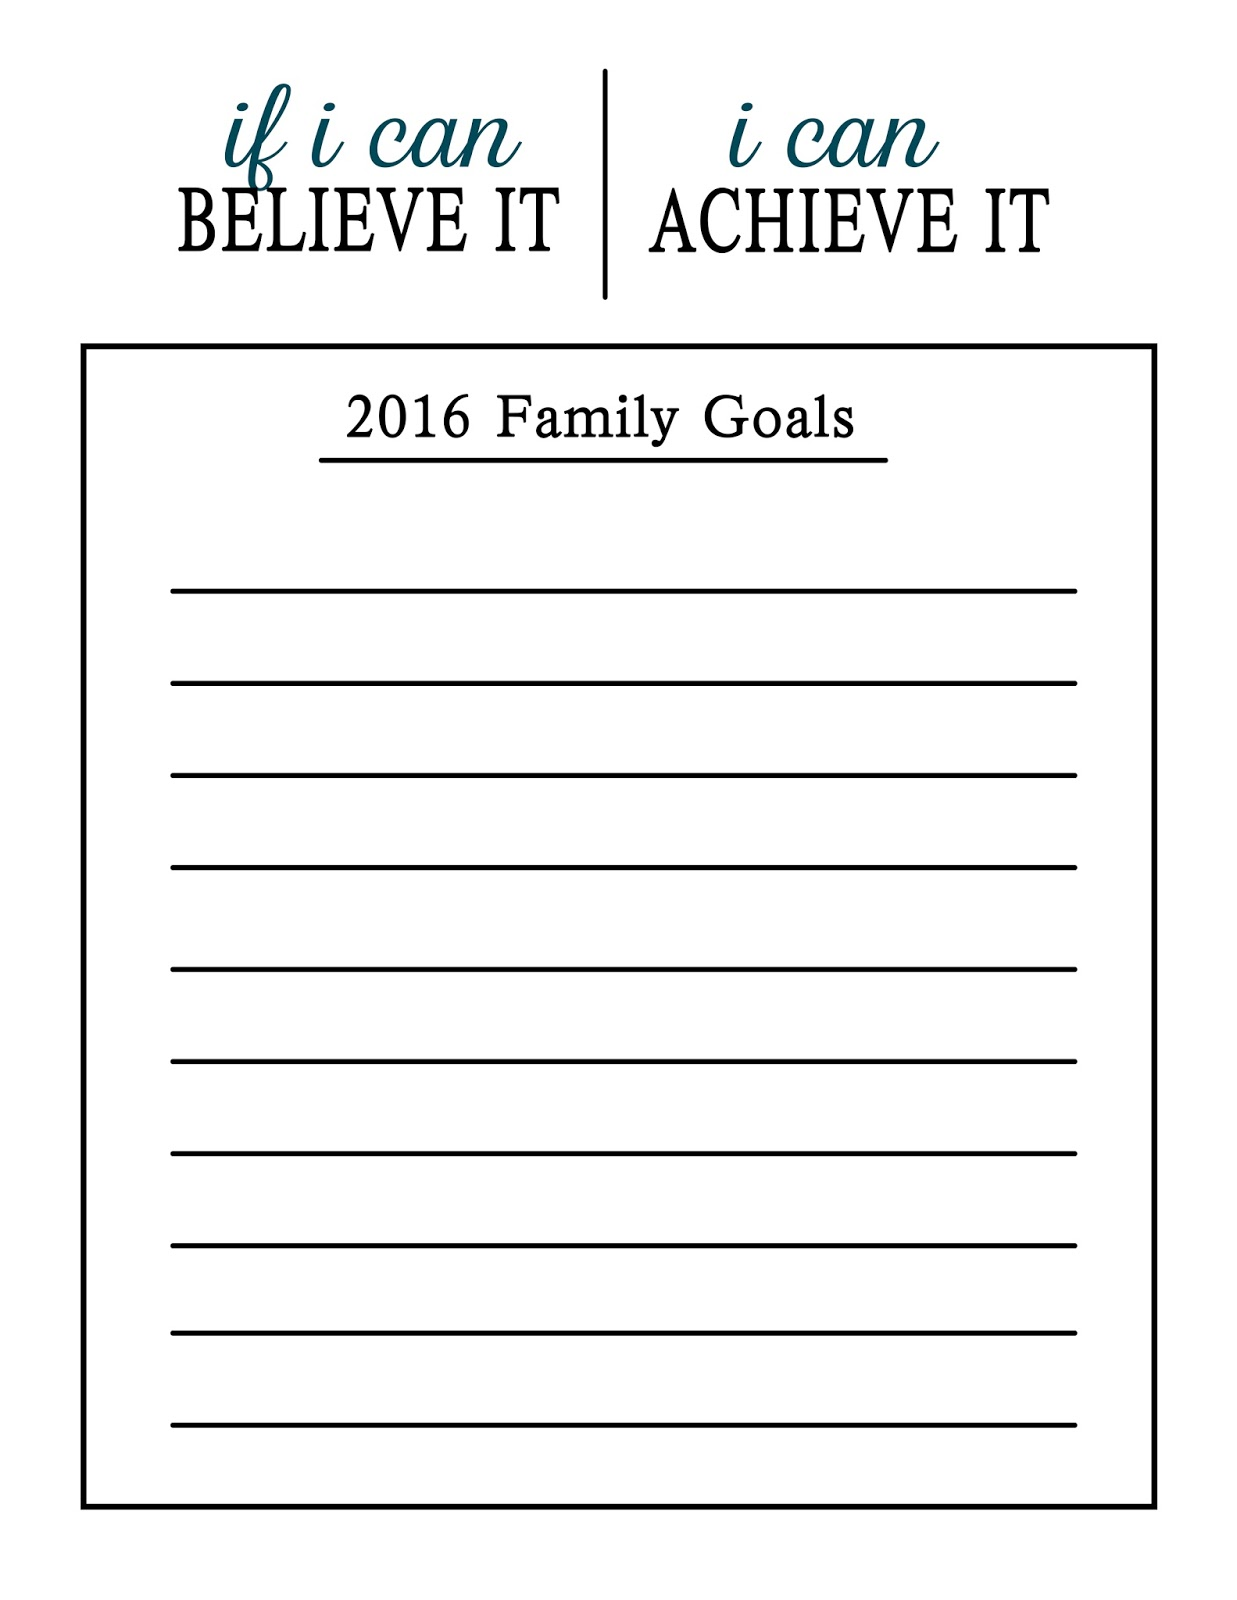 Pillow Thought New Year New Goals Free Printable